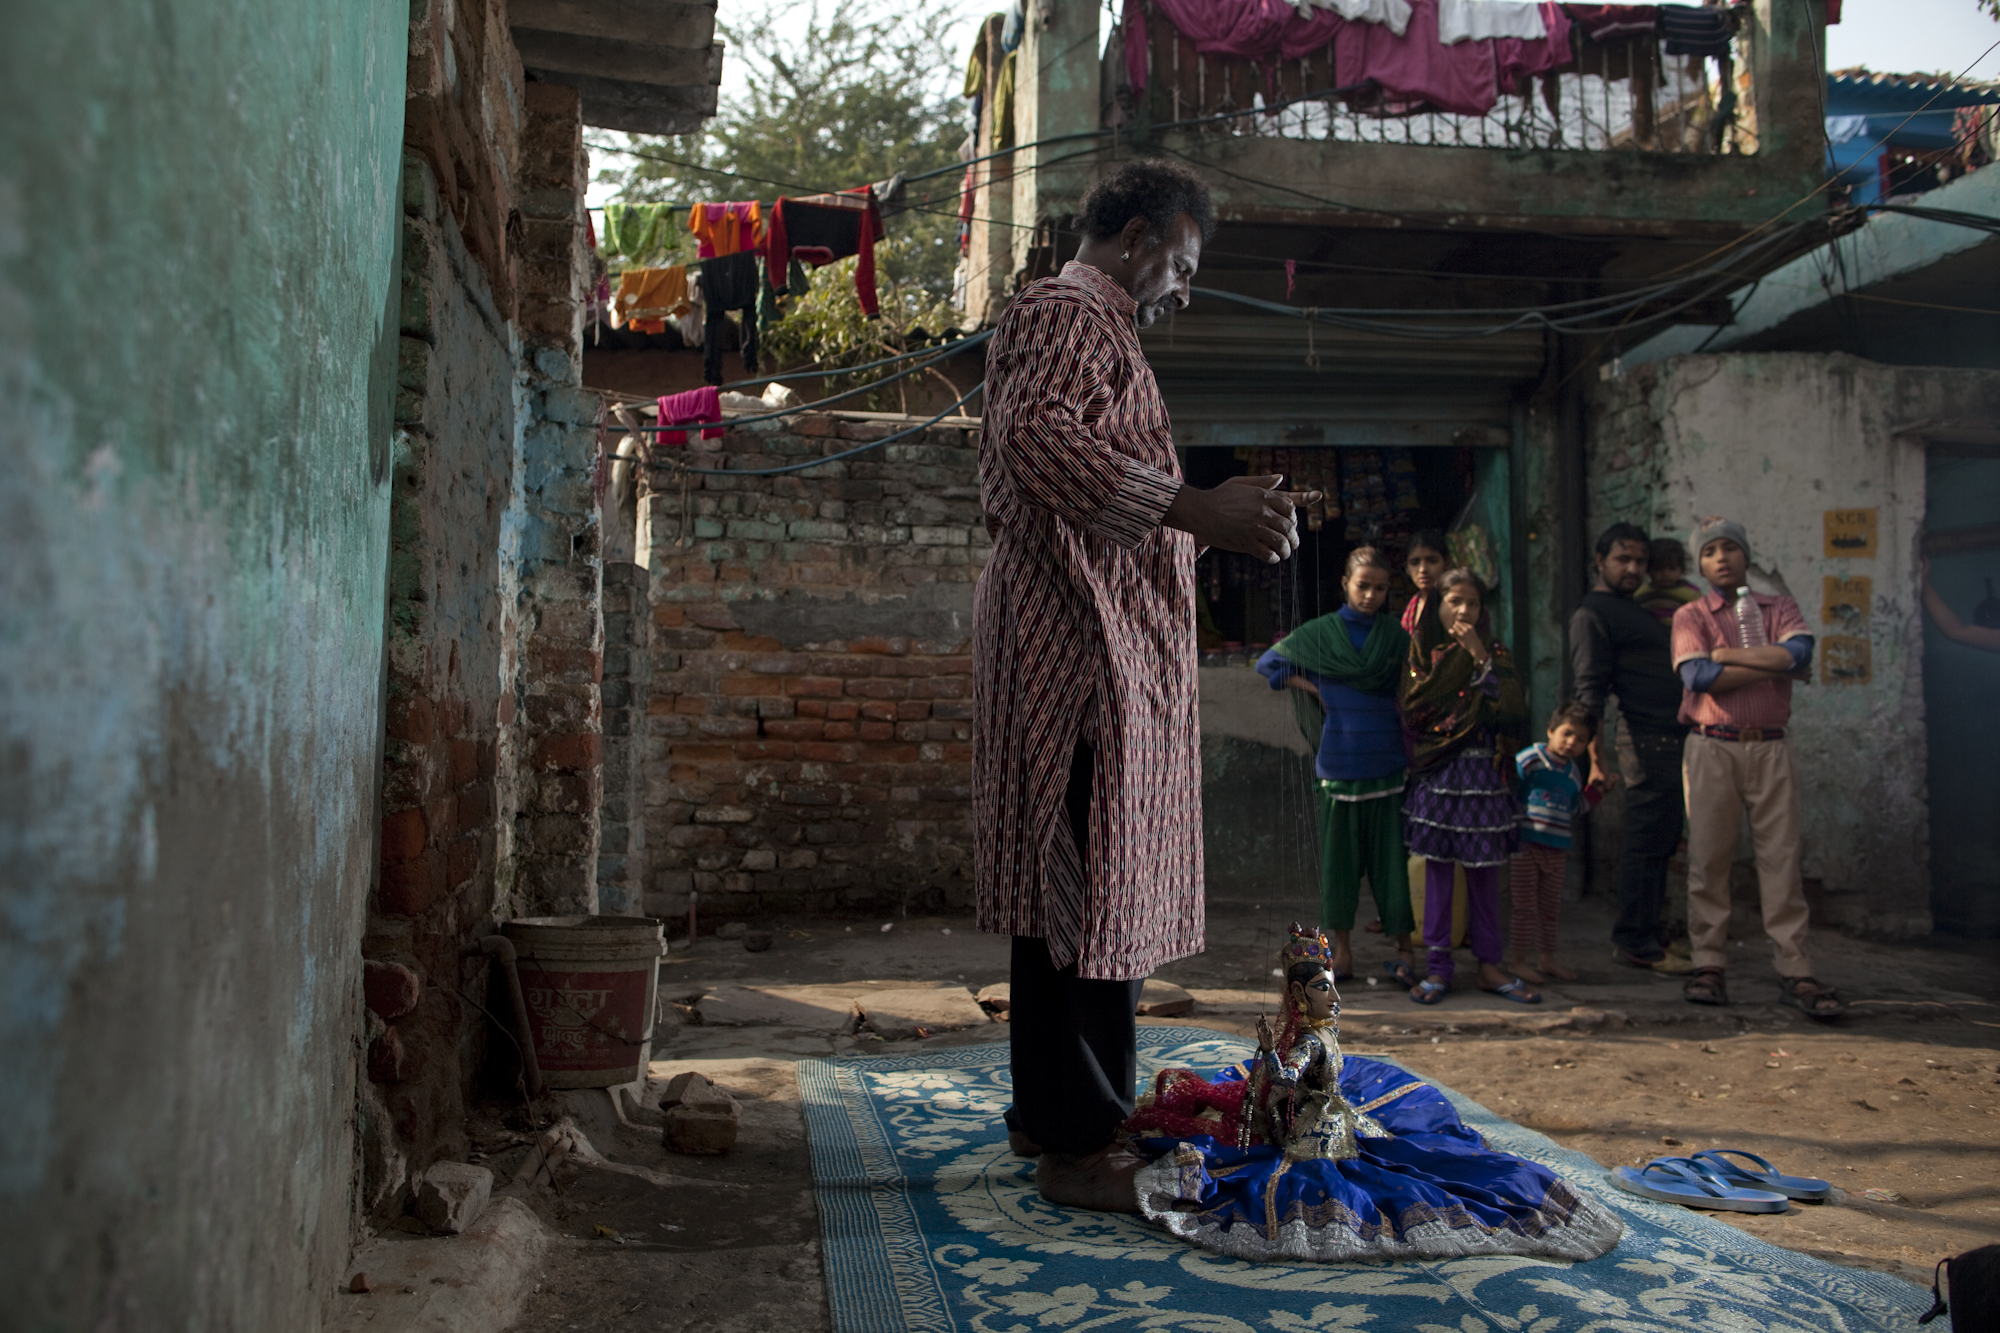 Puran Bhatt practices with a traditional dancer puppet in a back alley of Kathputli.